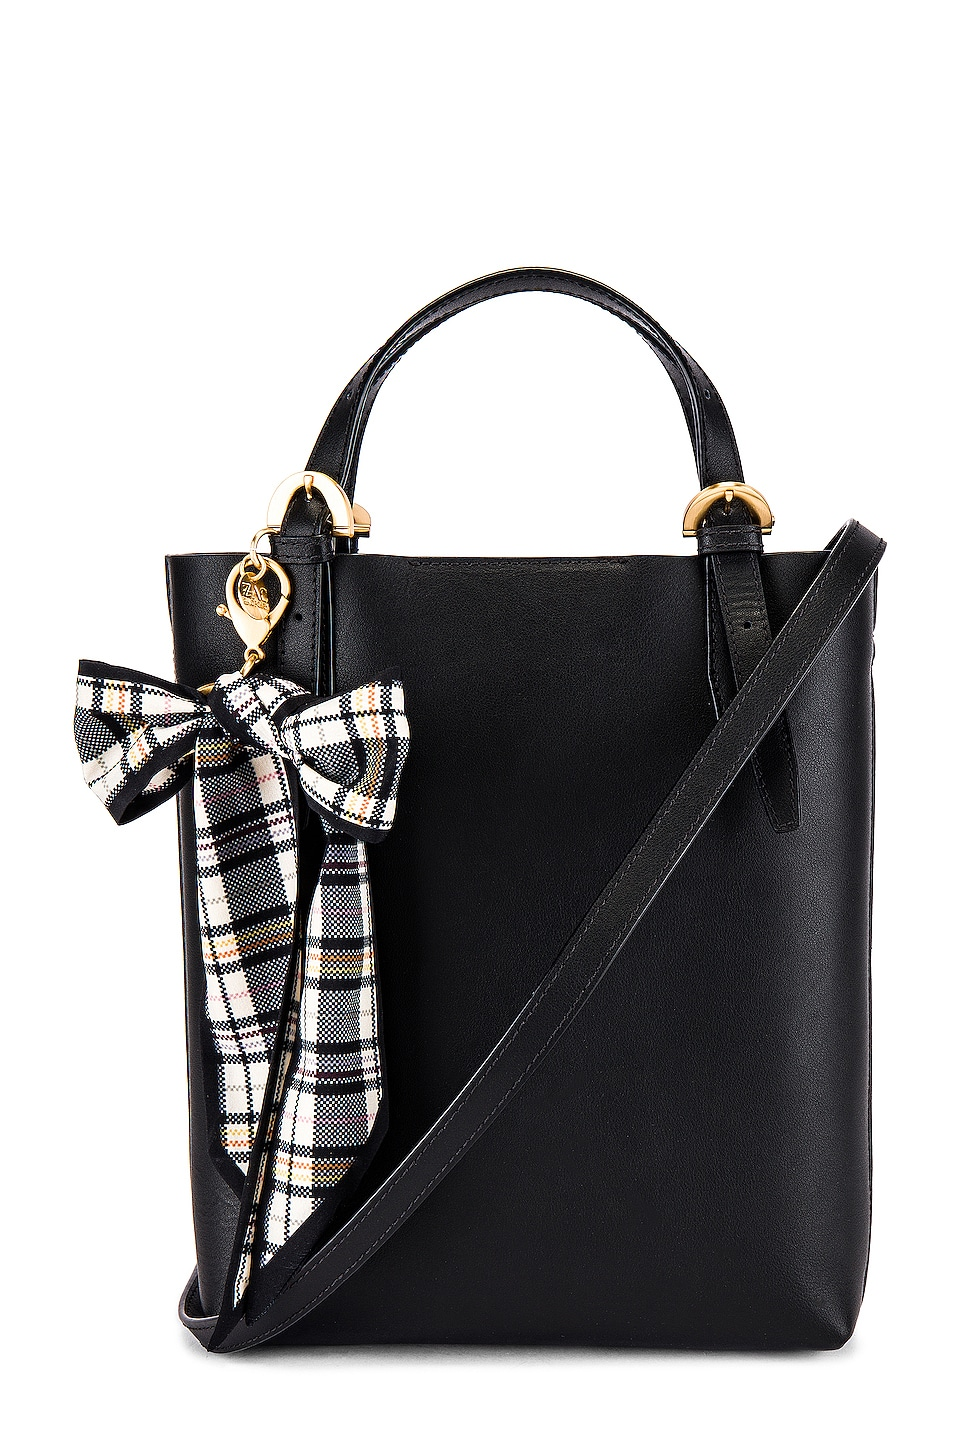 Zac Zac Posen Posen Mini Tote in Black